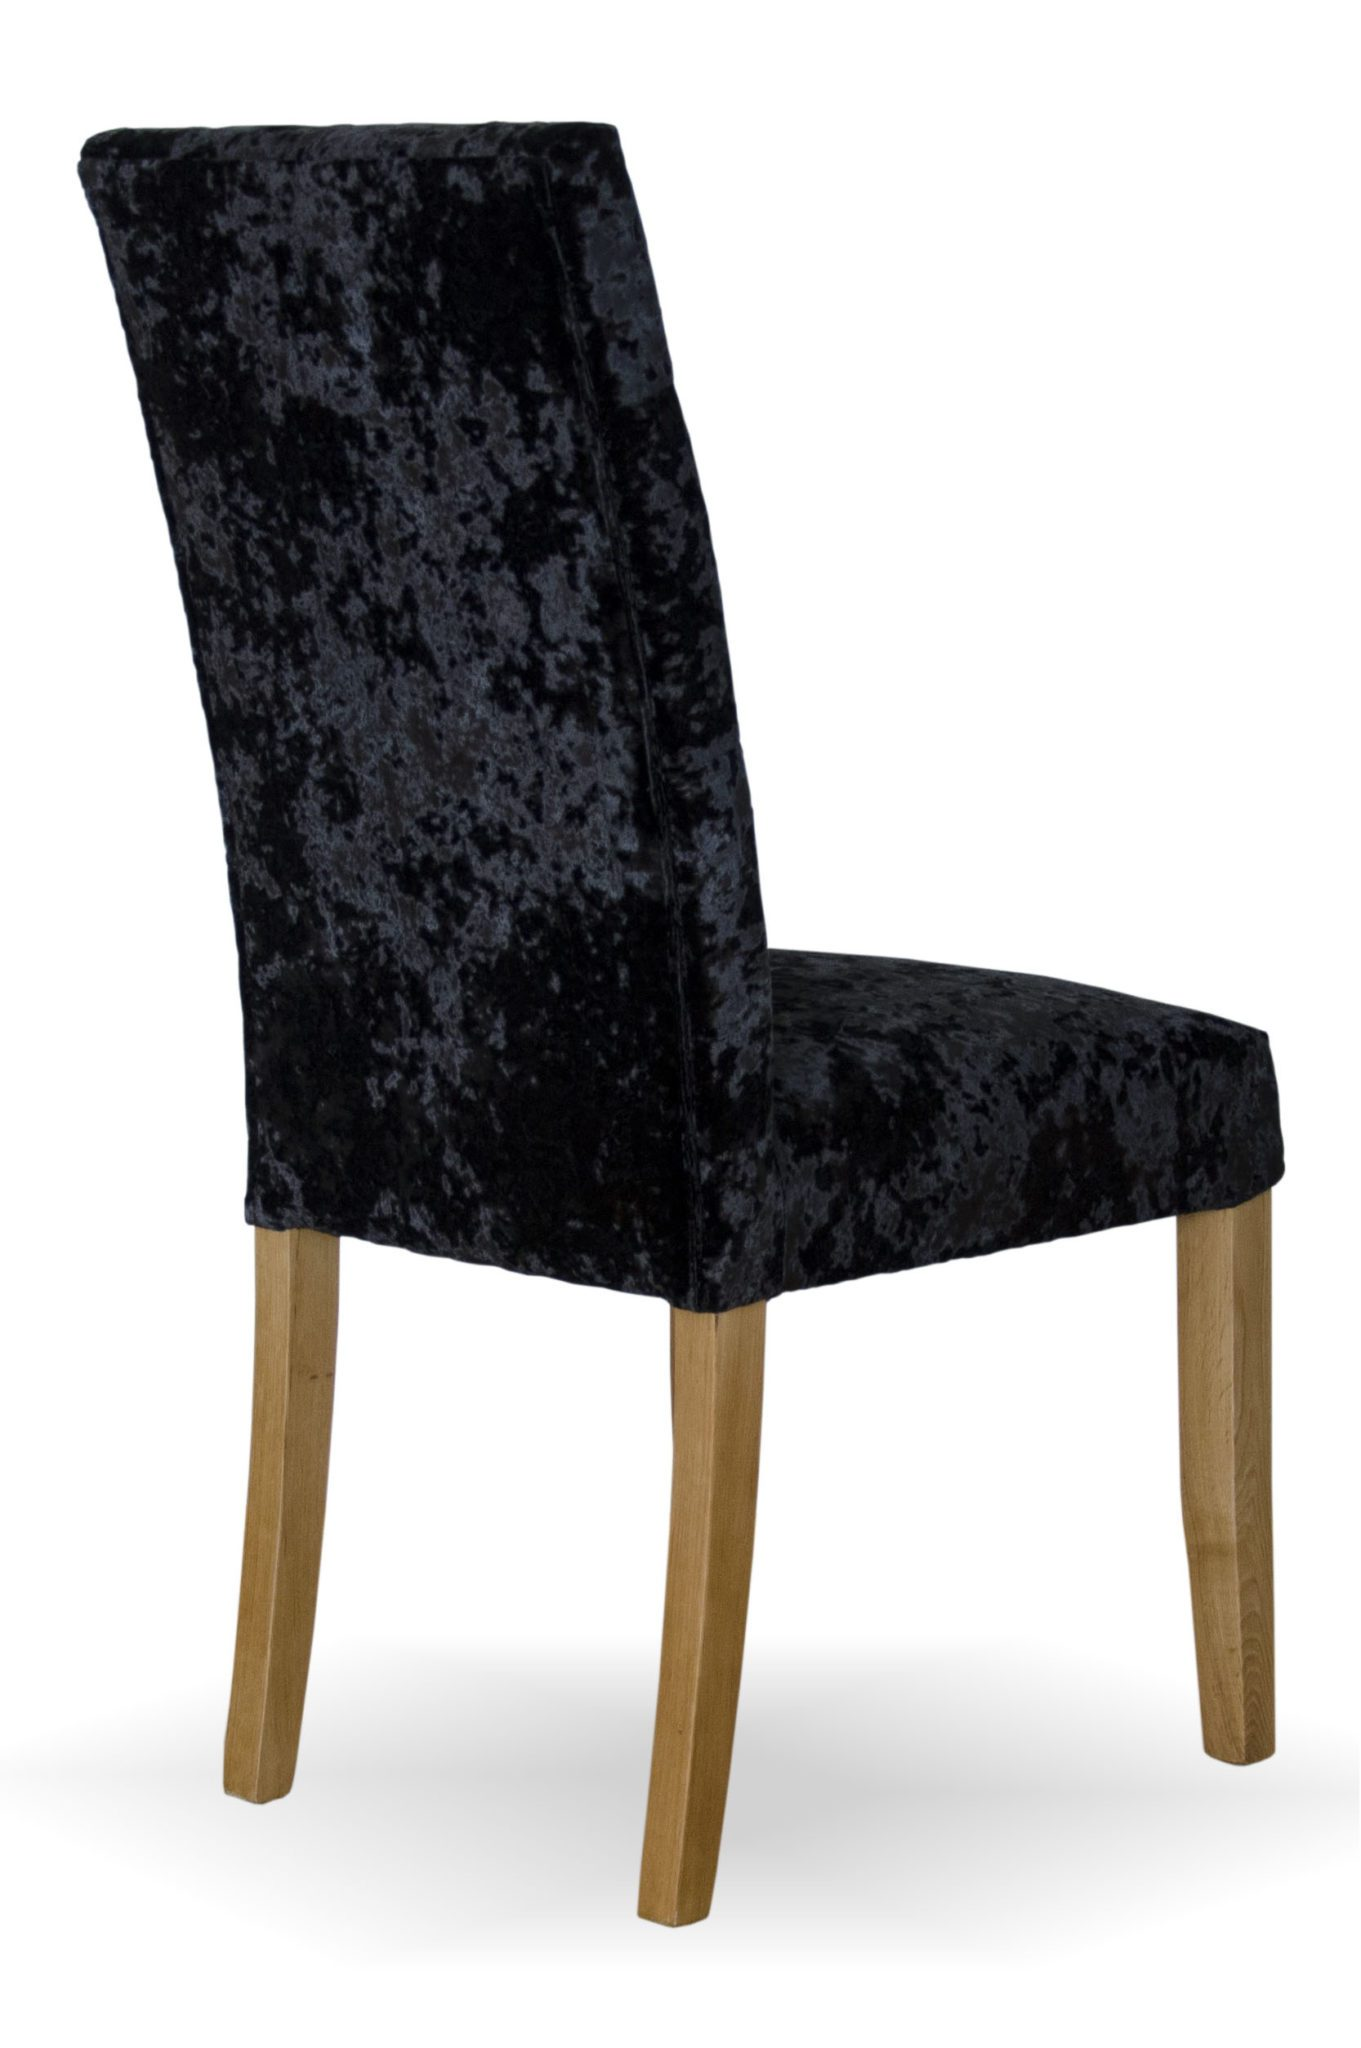 Stockholm chair - deep crushed black1